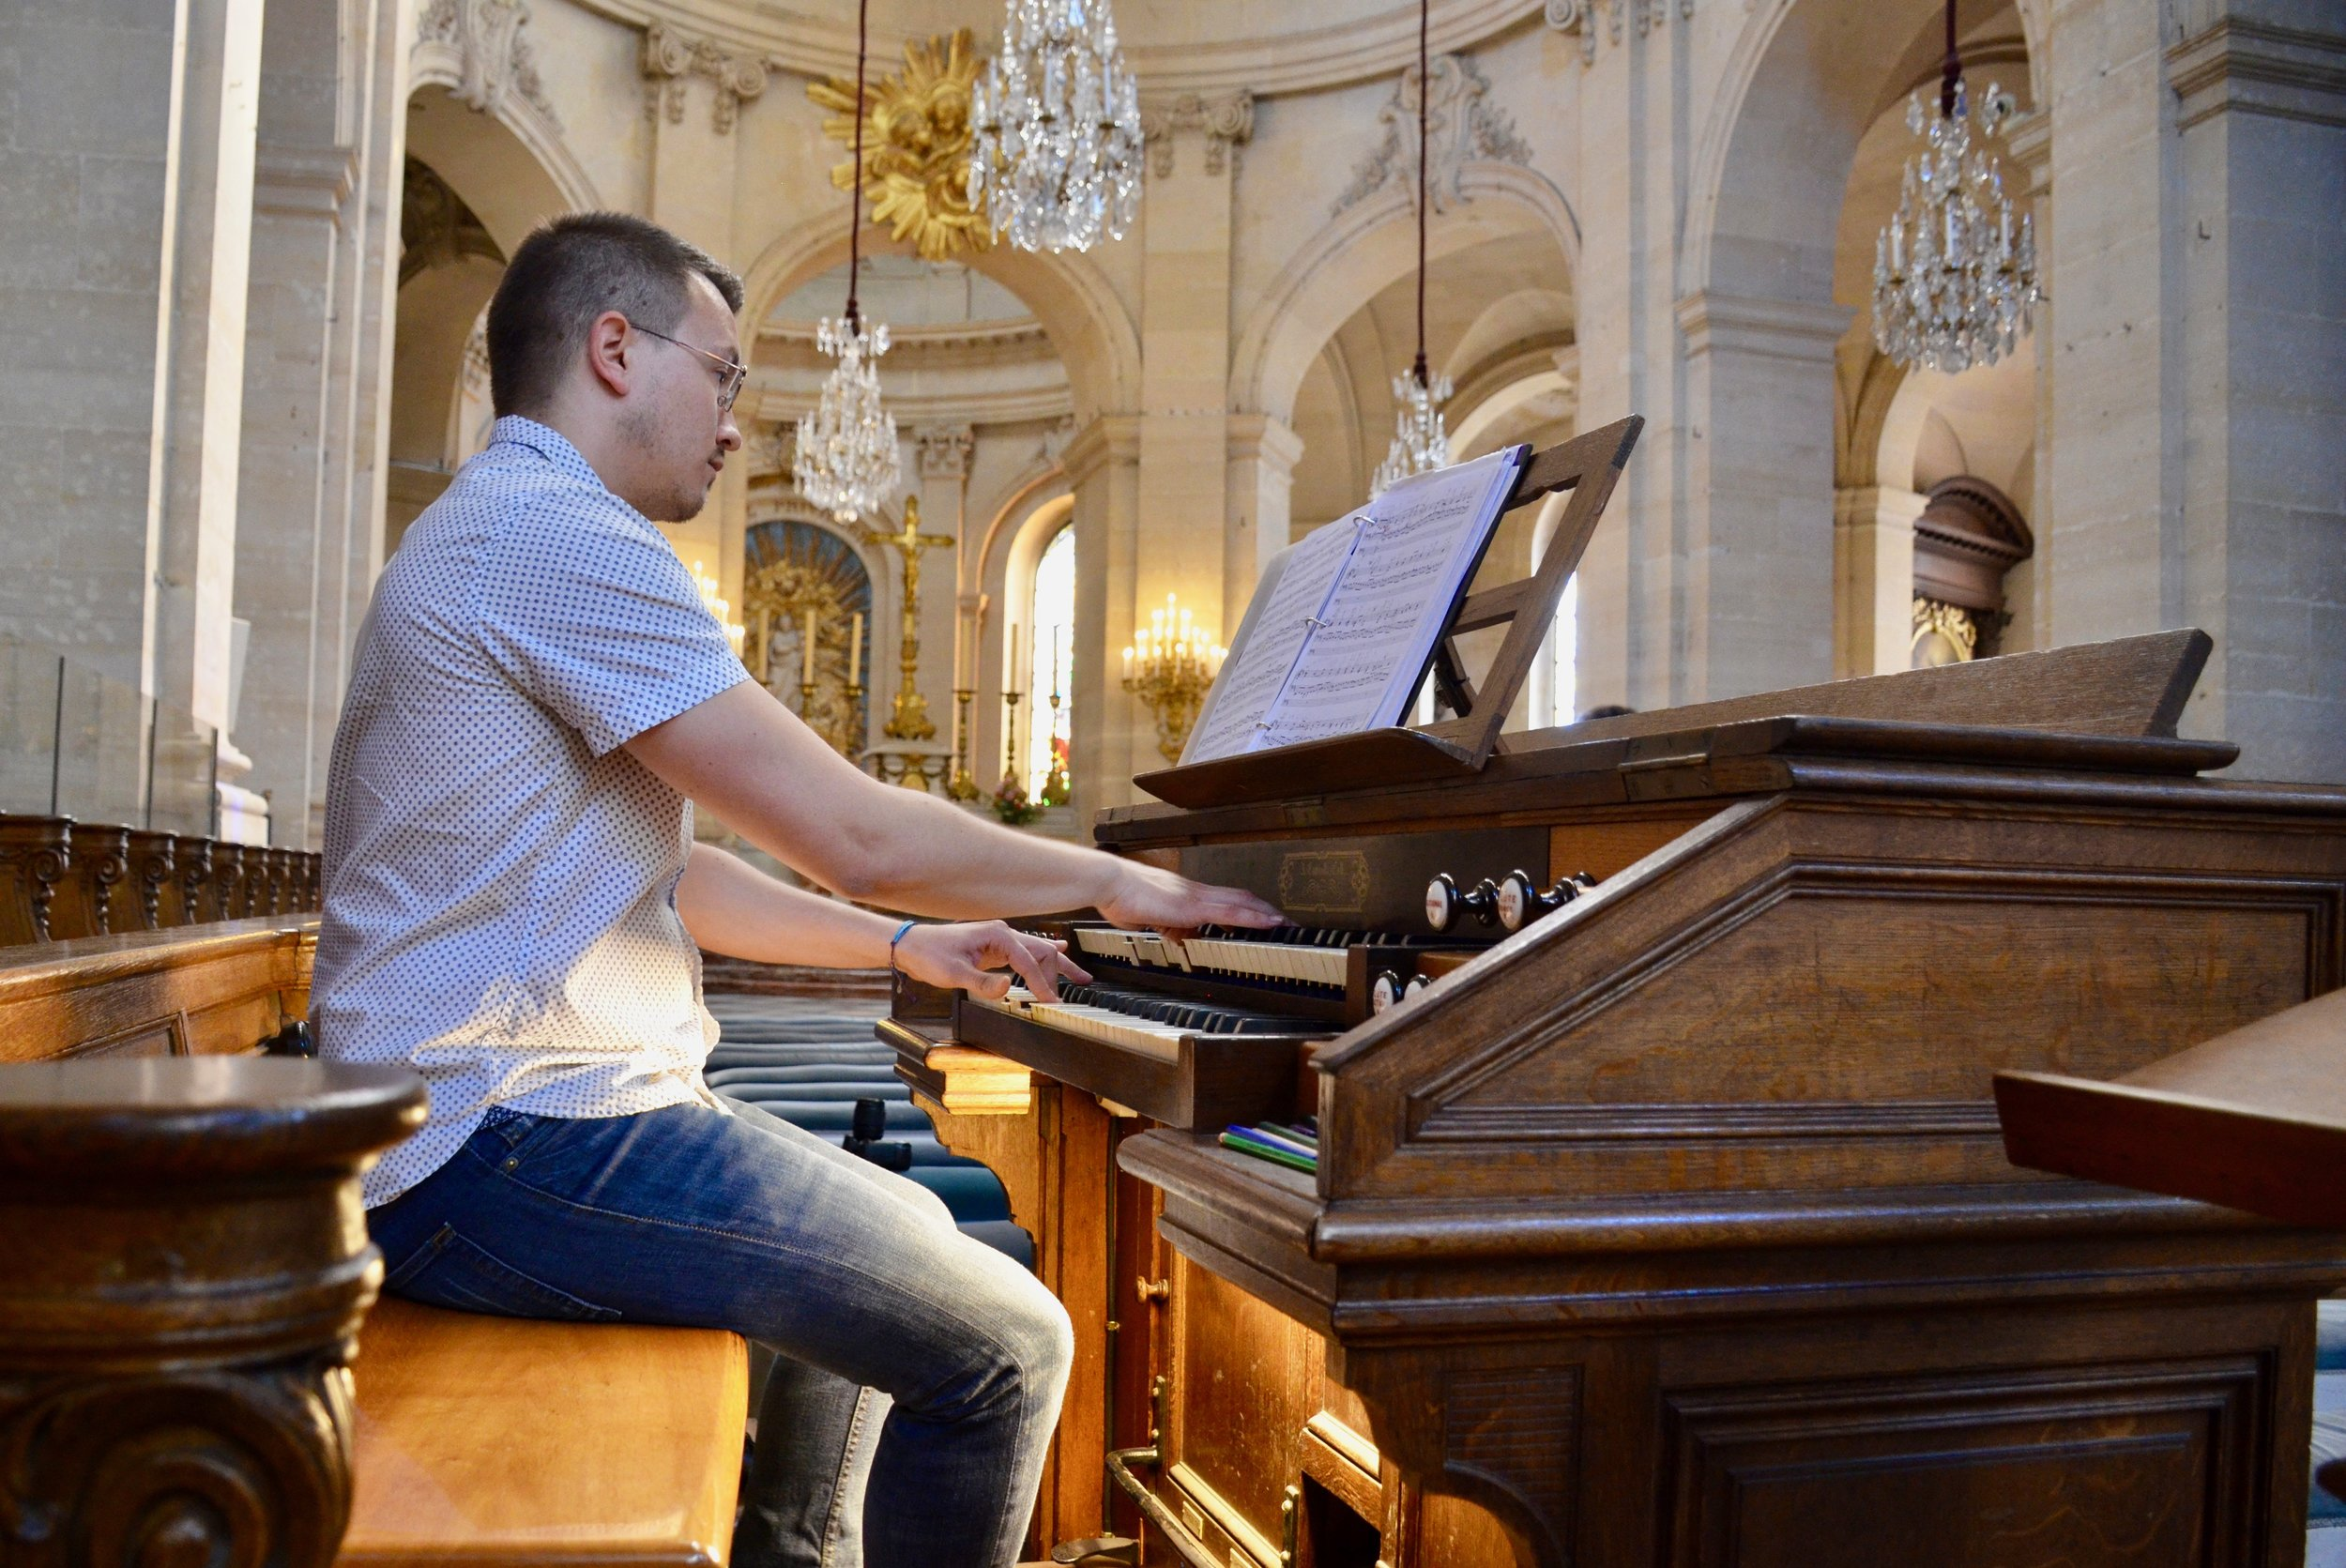 Corey de Tar plays the Choir Organ at Saint Louis in Versailles